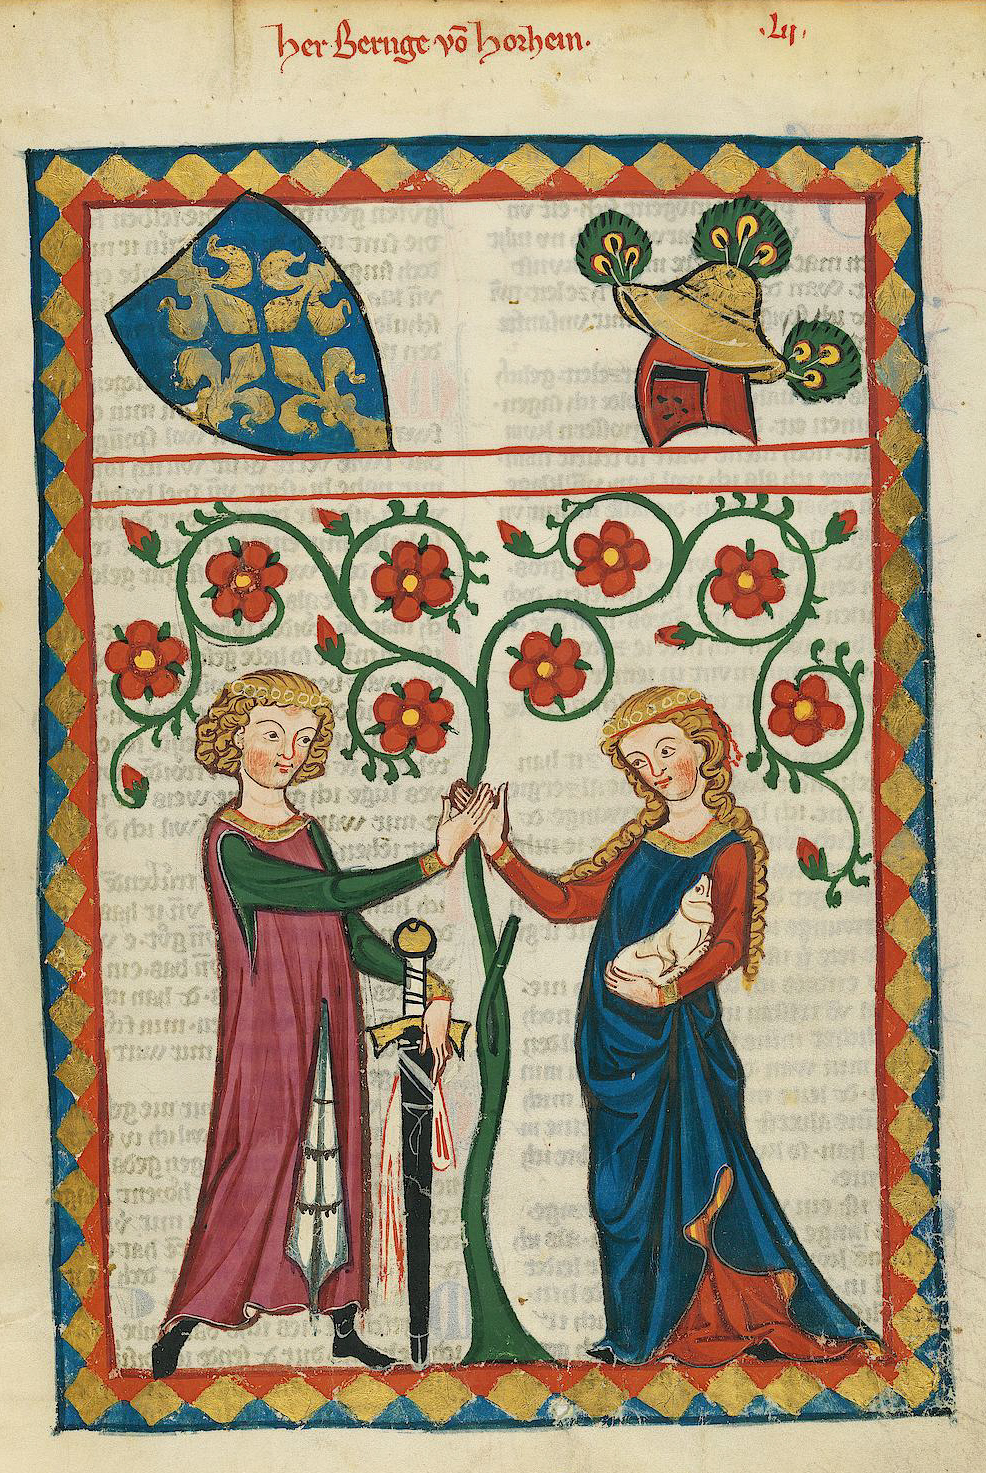 From the Manesse Codex